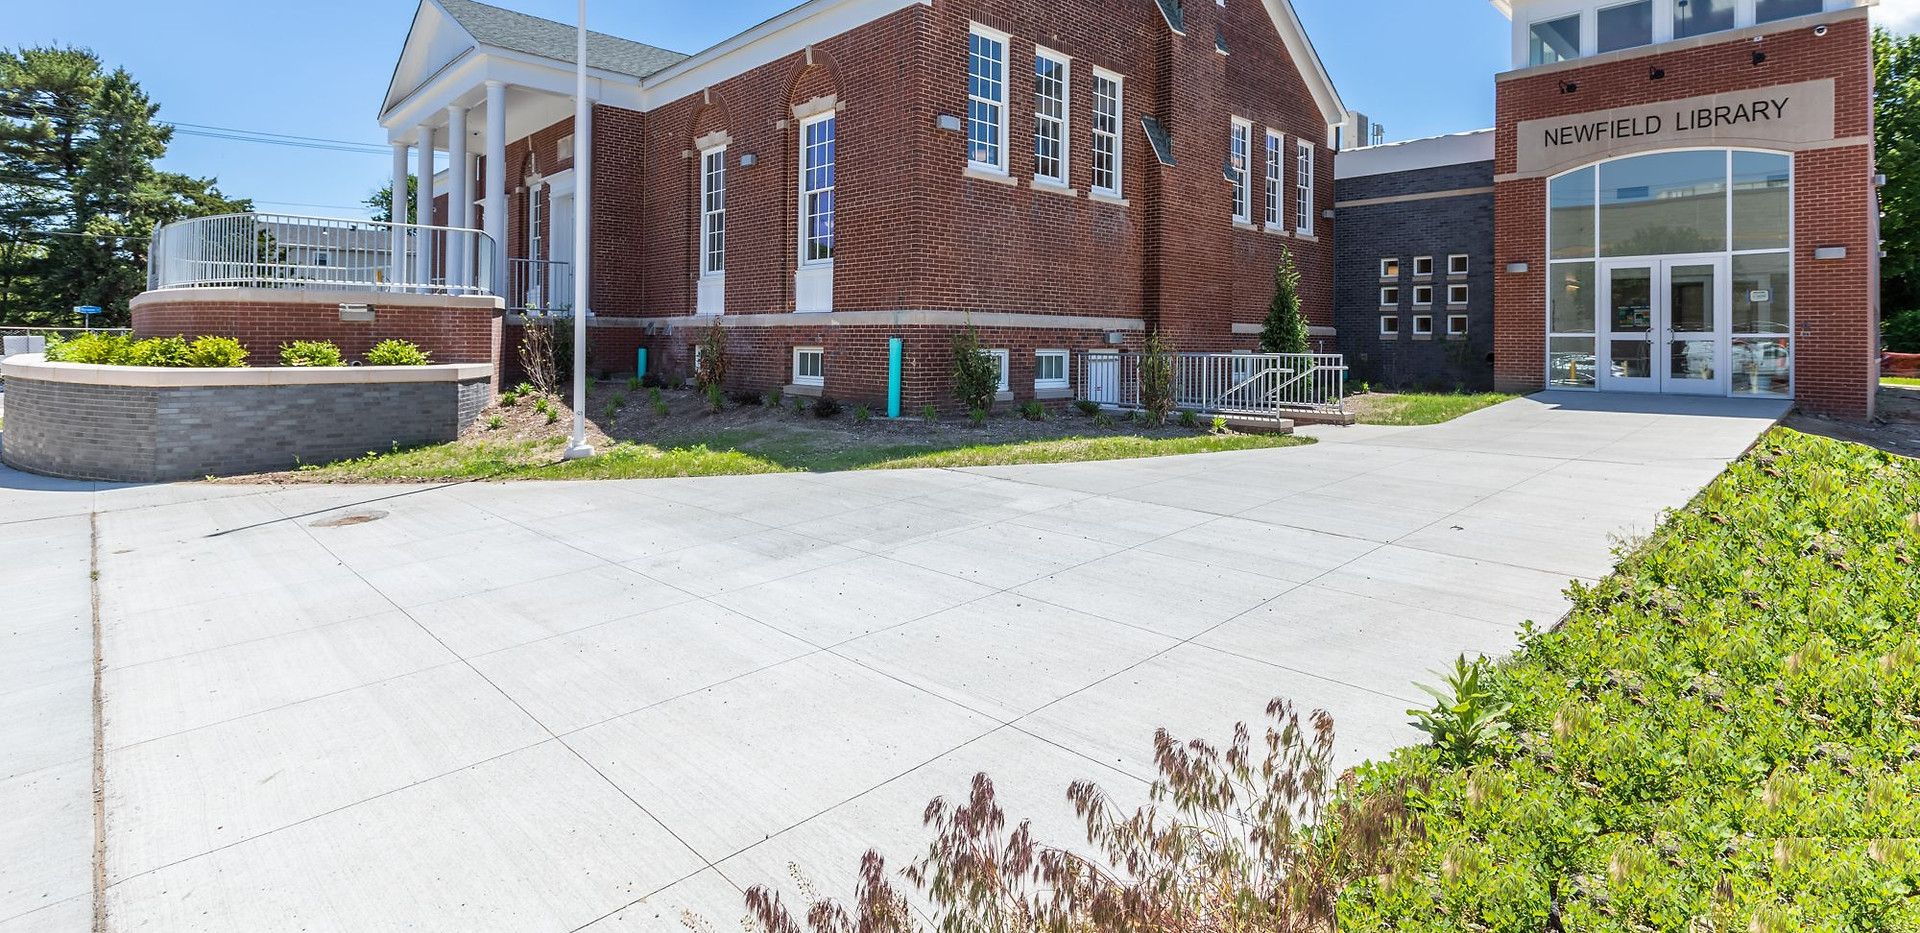 Bridgeport Public Library Newfield Branch (Renovation and Addition)